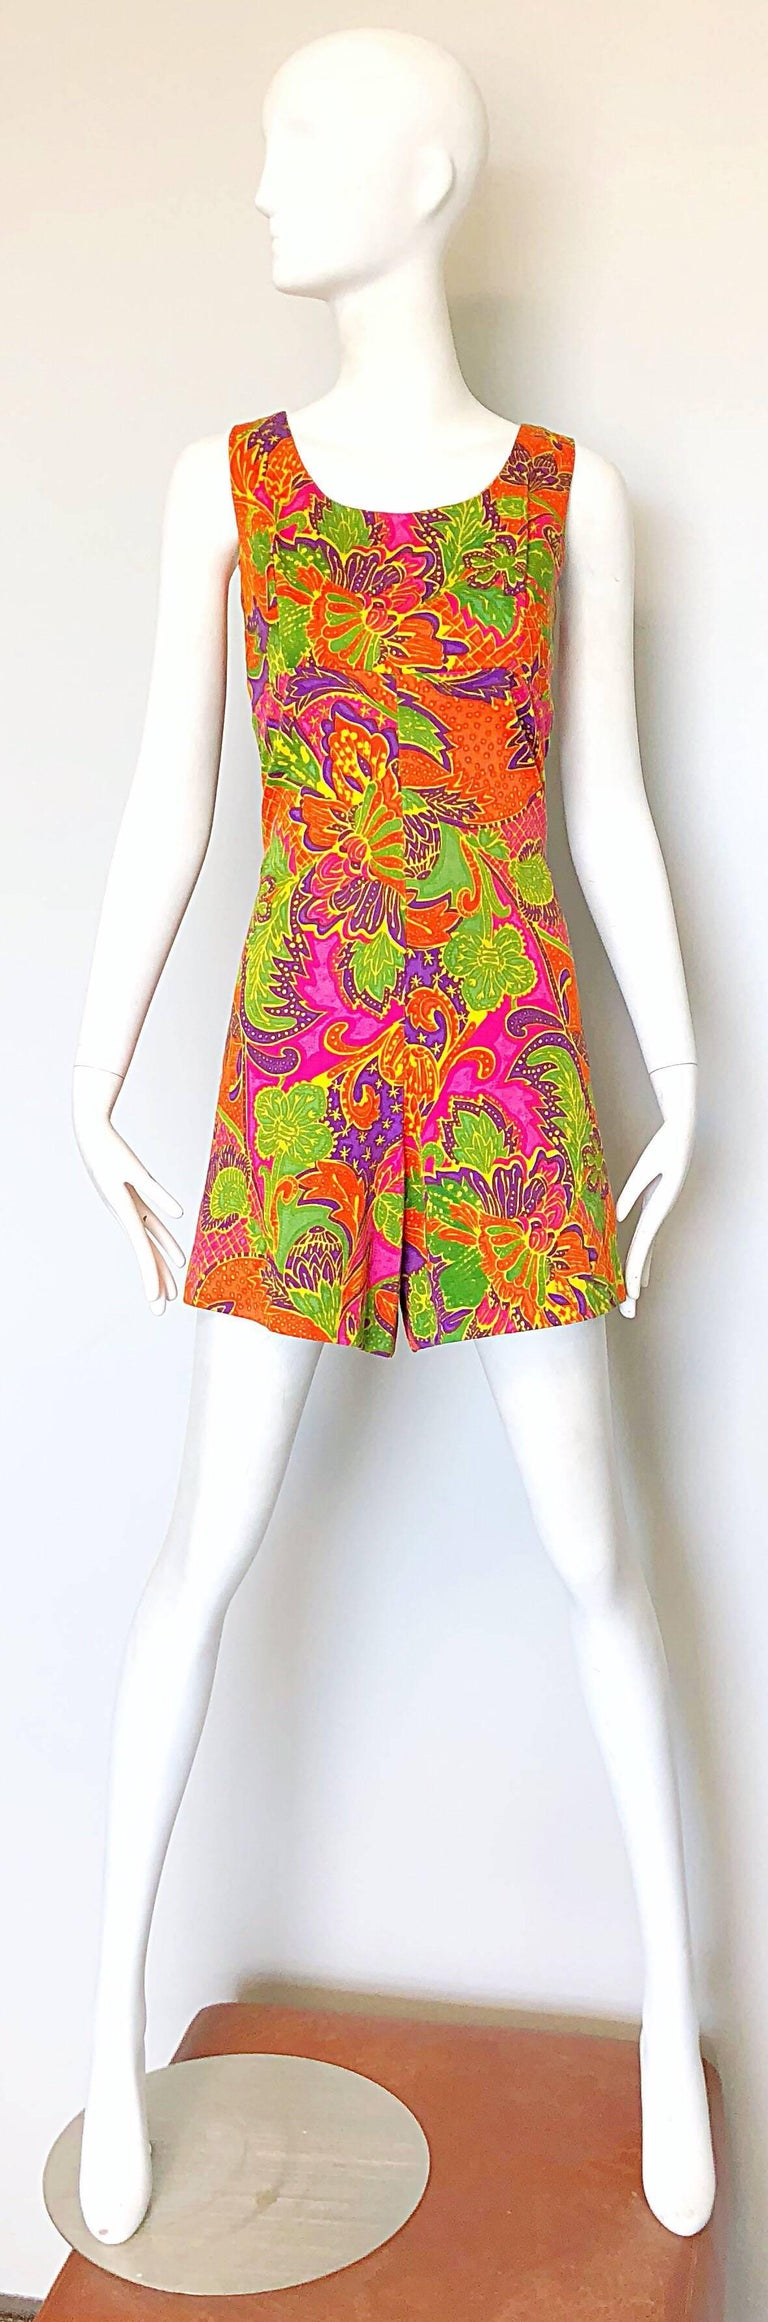 1960s Alfred Shaheen Brightly Colored Tropical Hawaiian One Piece 60s Romper  For Sale 4